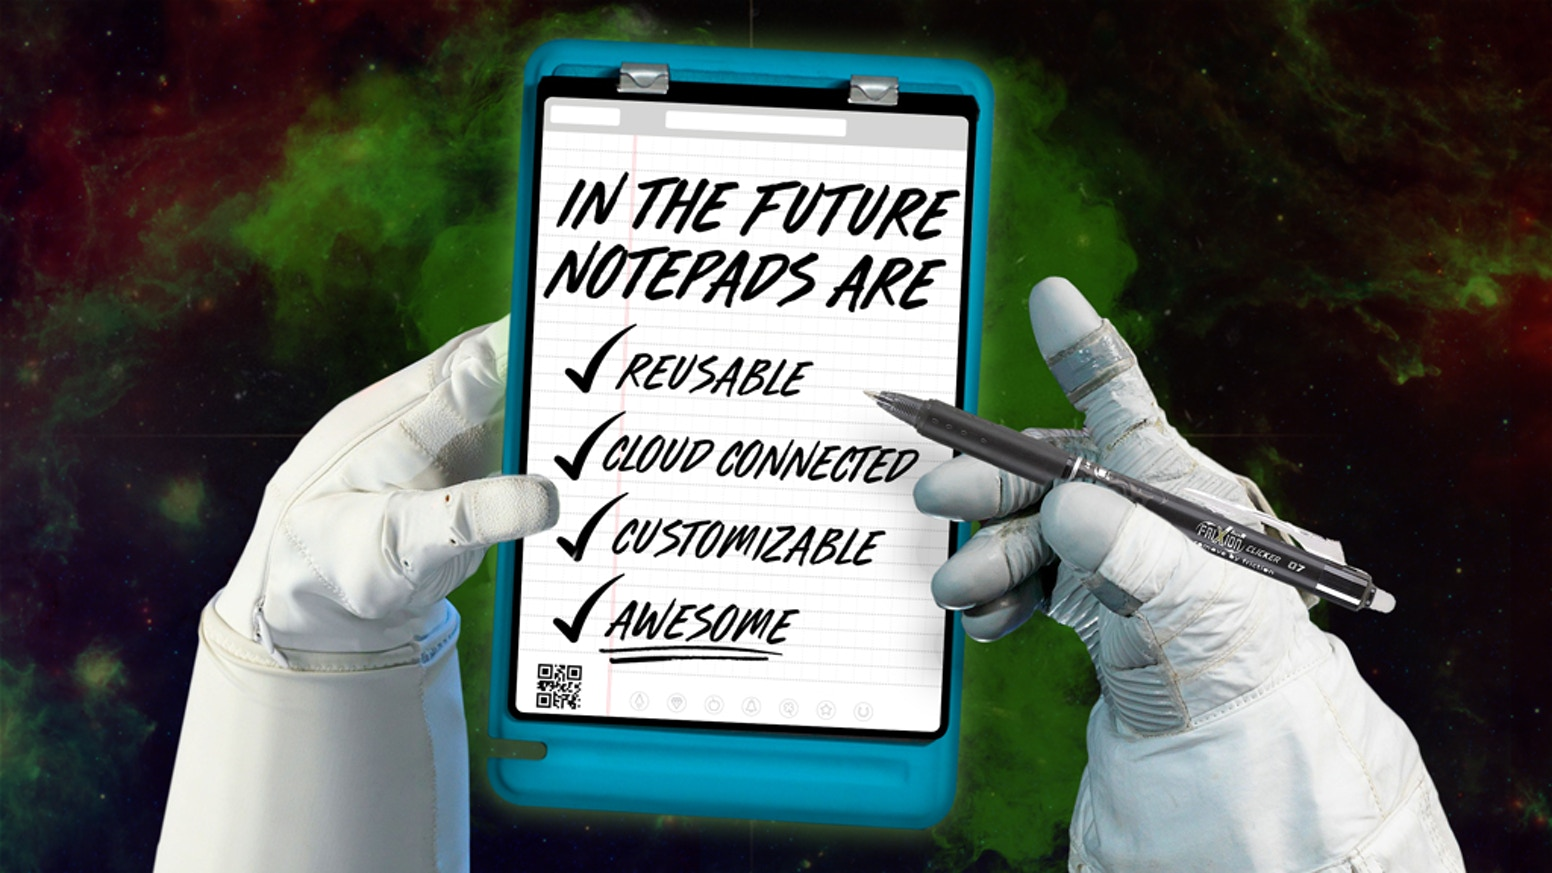 The pen and paper notepad of the future is reusable, customizable, modular, and connects with your favorite cloud services!